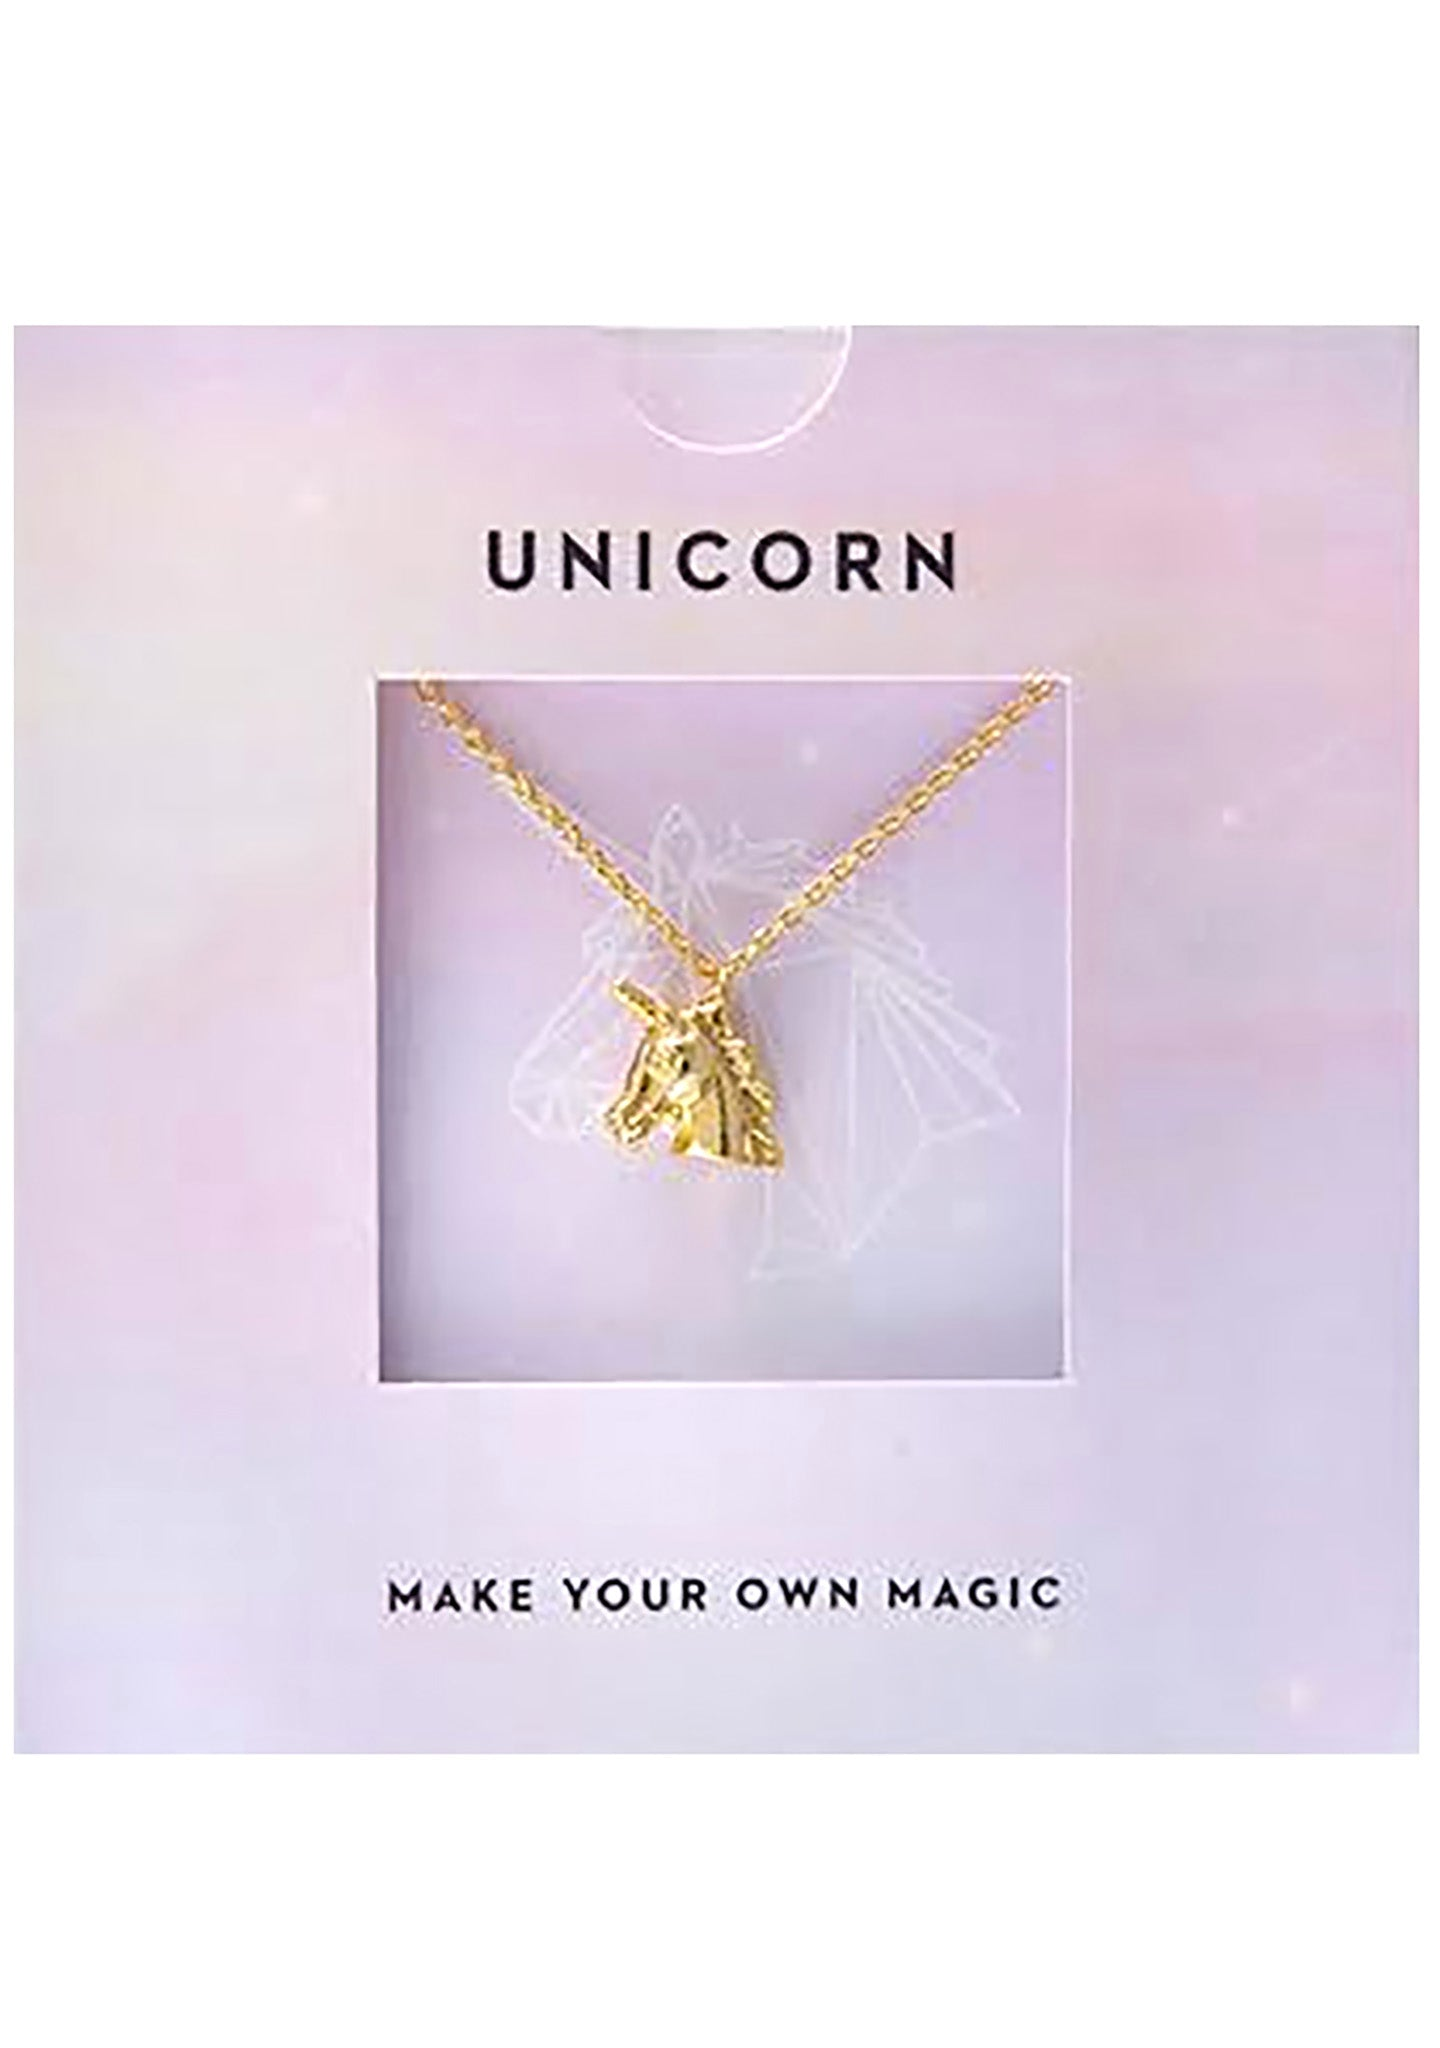 Wanderlust + Co Emoji Unicorn Necklace in Gold